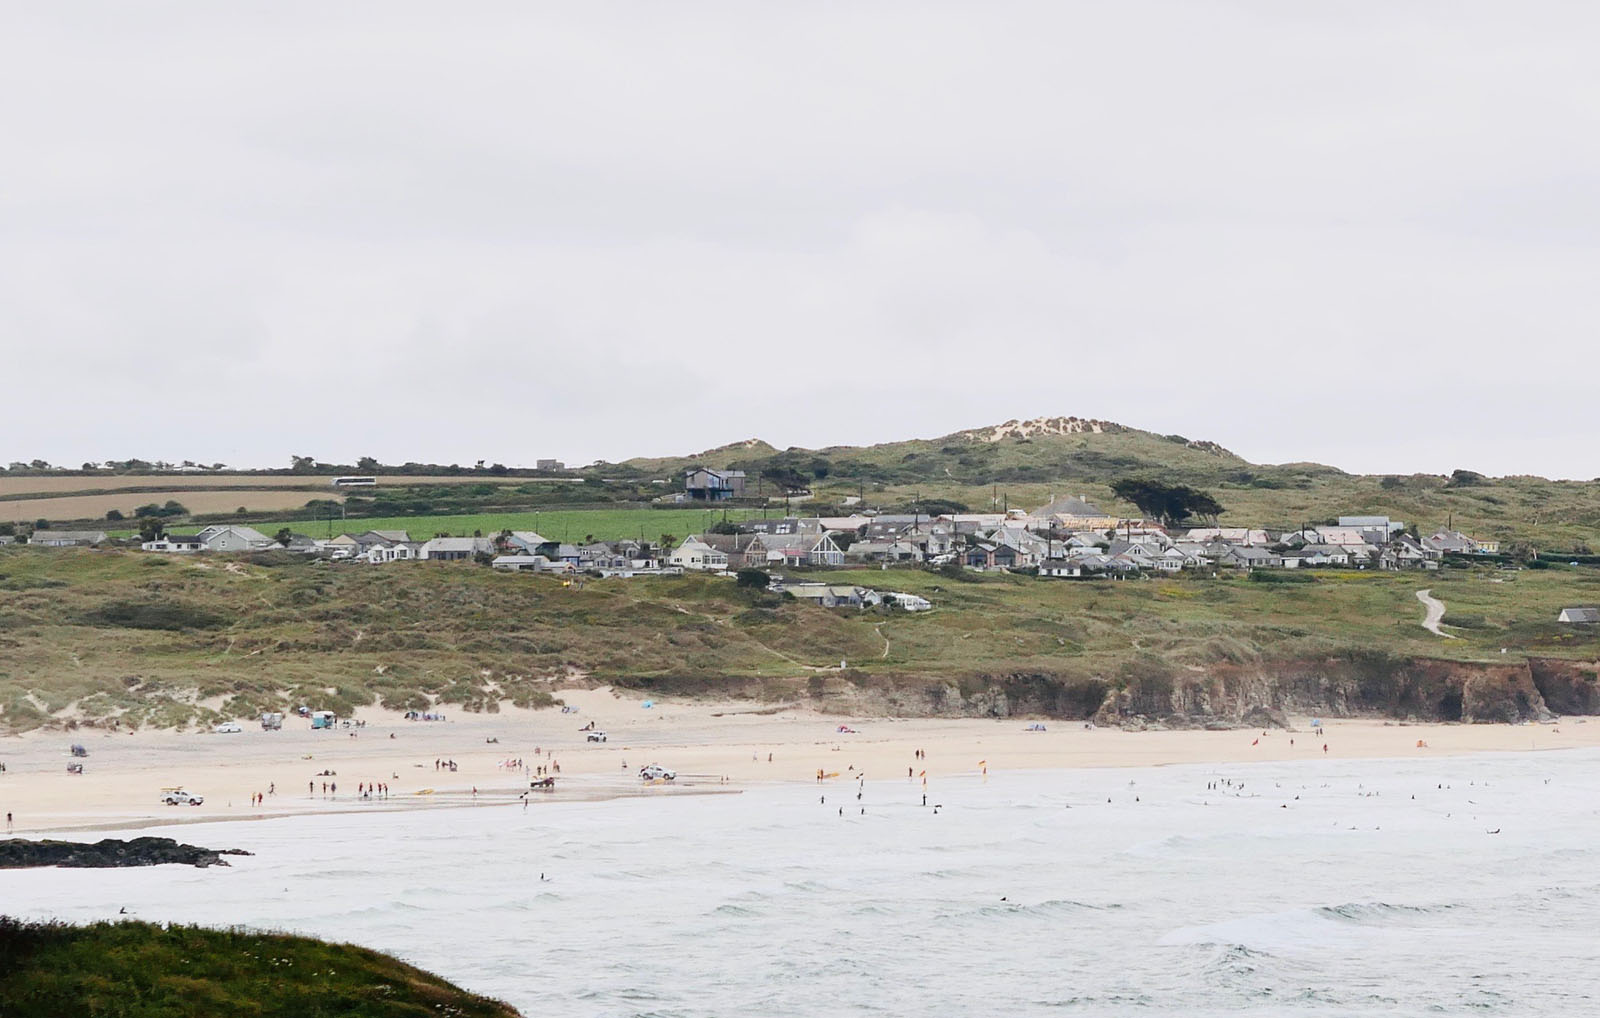 Gwithian Towans holiday home village as seen from Godrevy.